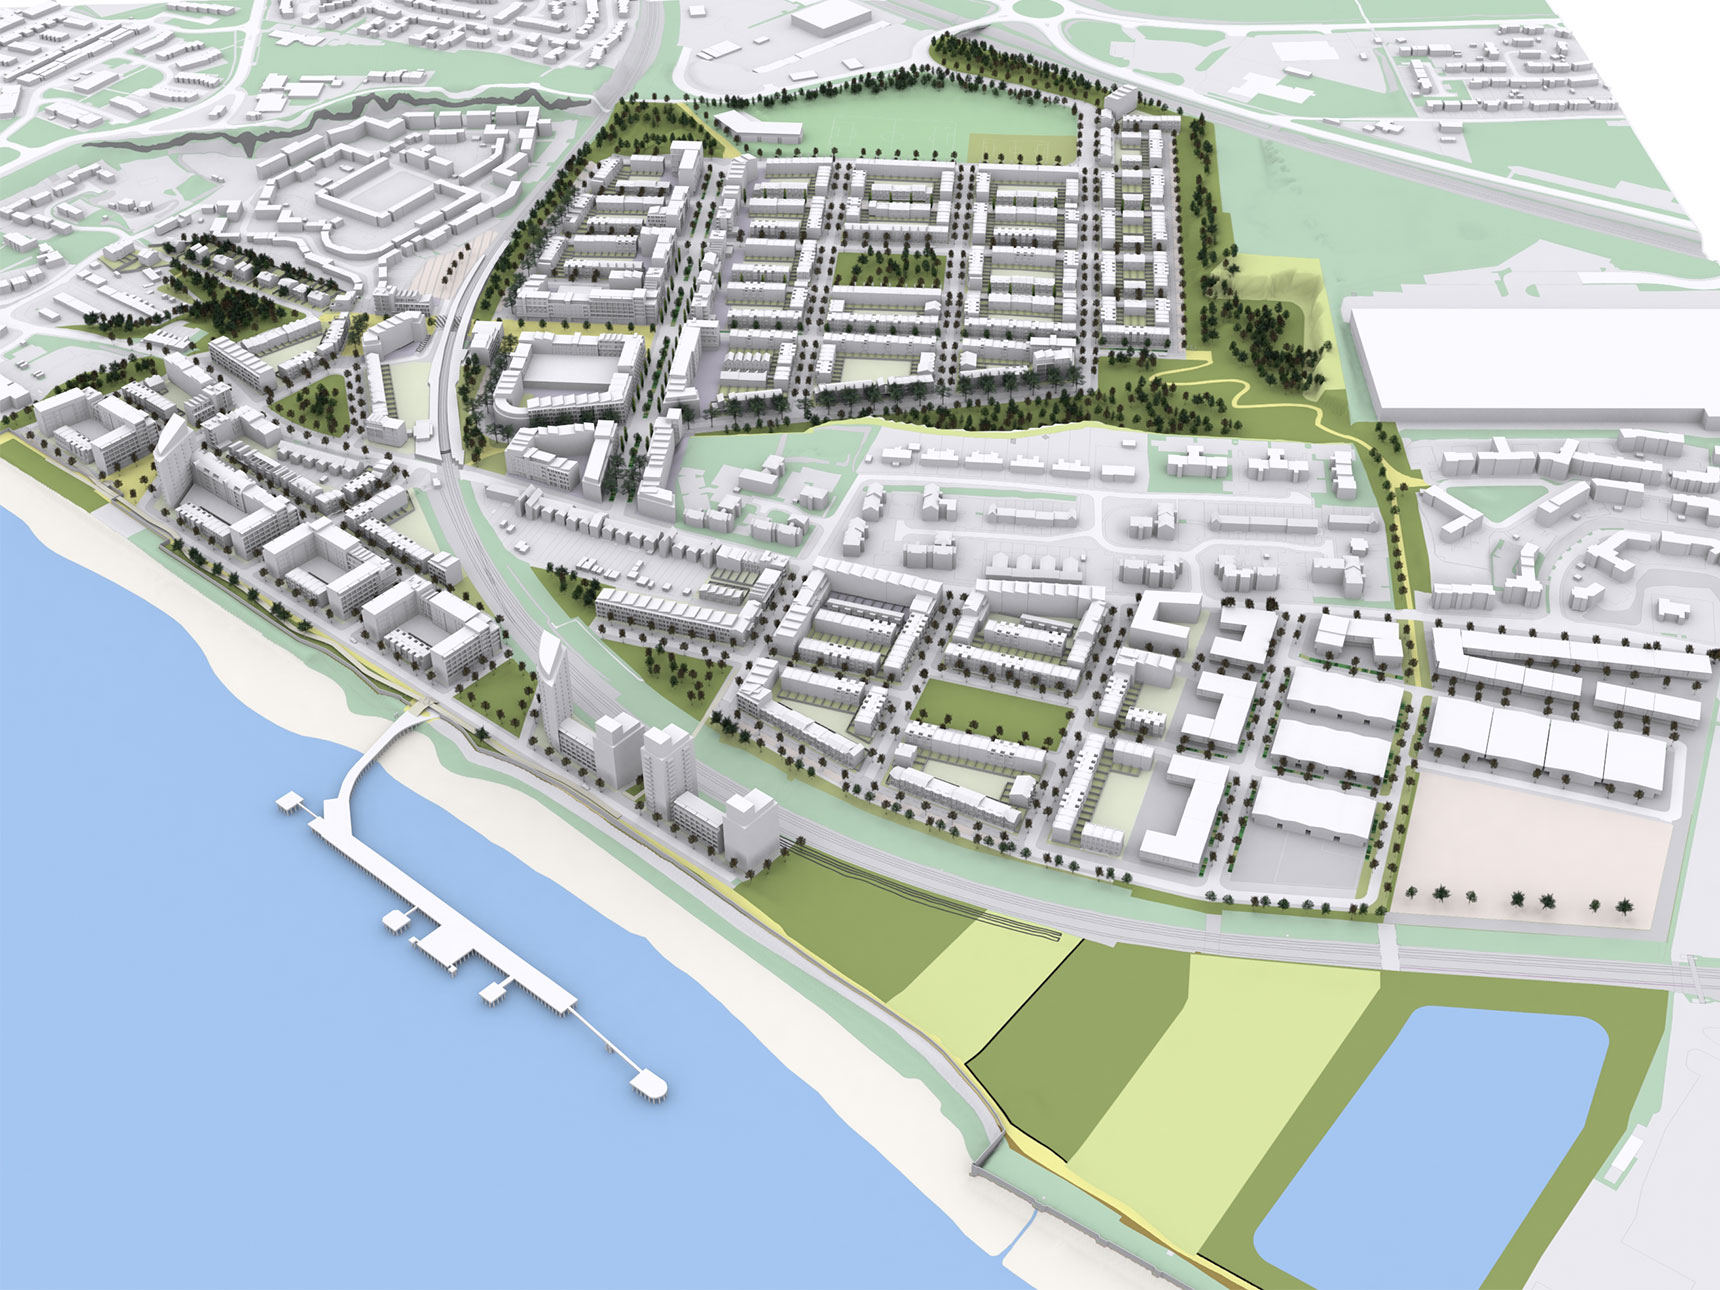 //uistudio.co.uk/wp-content/uploads/2018/01/3822_Purfleet_3D-model-2_1720x1290.jpg